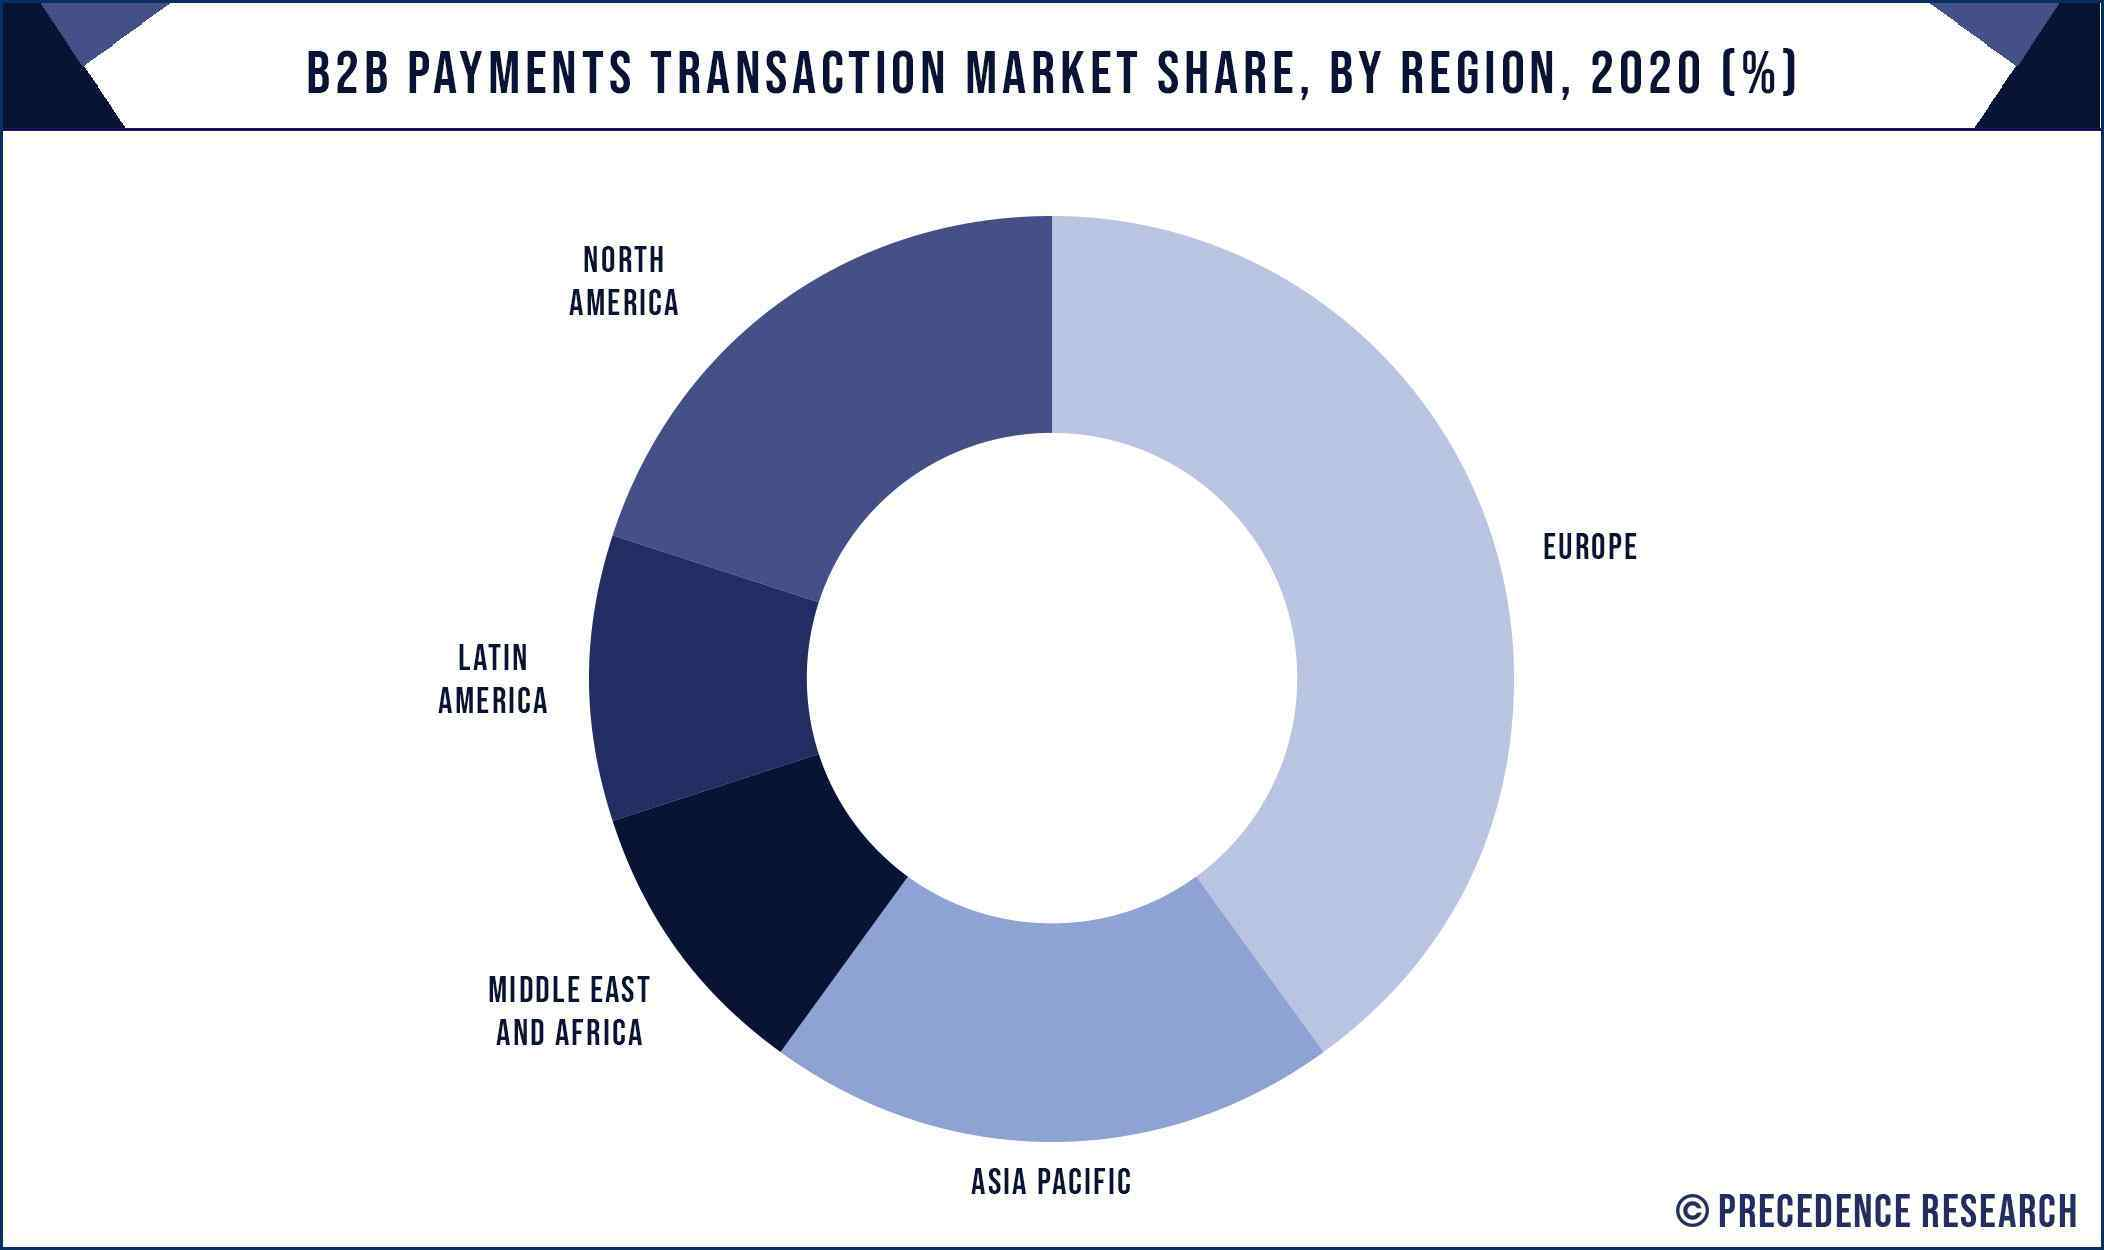 B2B Payments Transaction Market Share, By Region, 2020 (%)